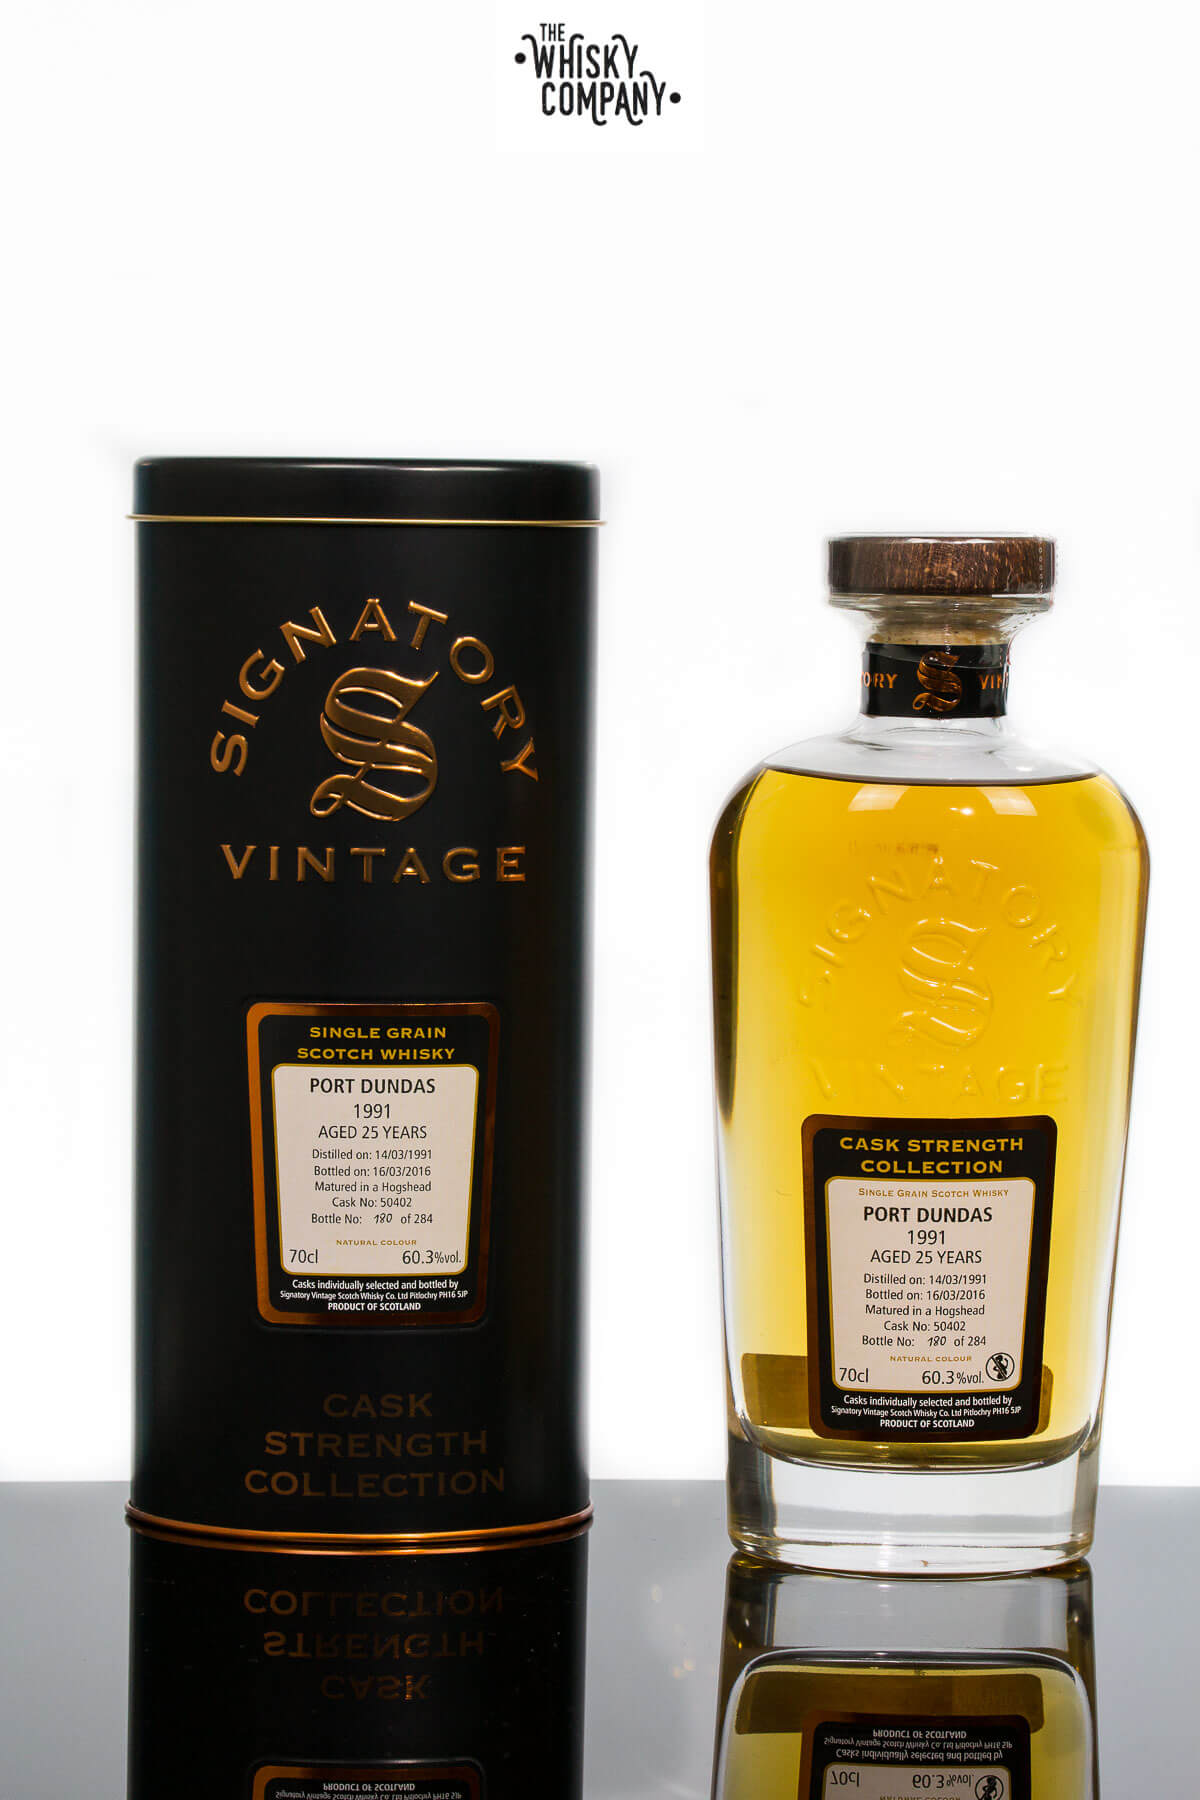 Port Dundas 1991 Aged 25 Years Single Grain - Signatory Vintage